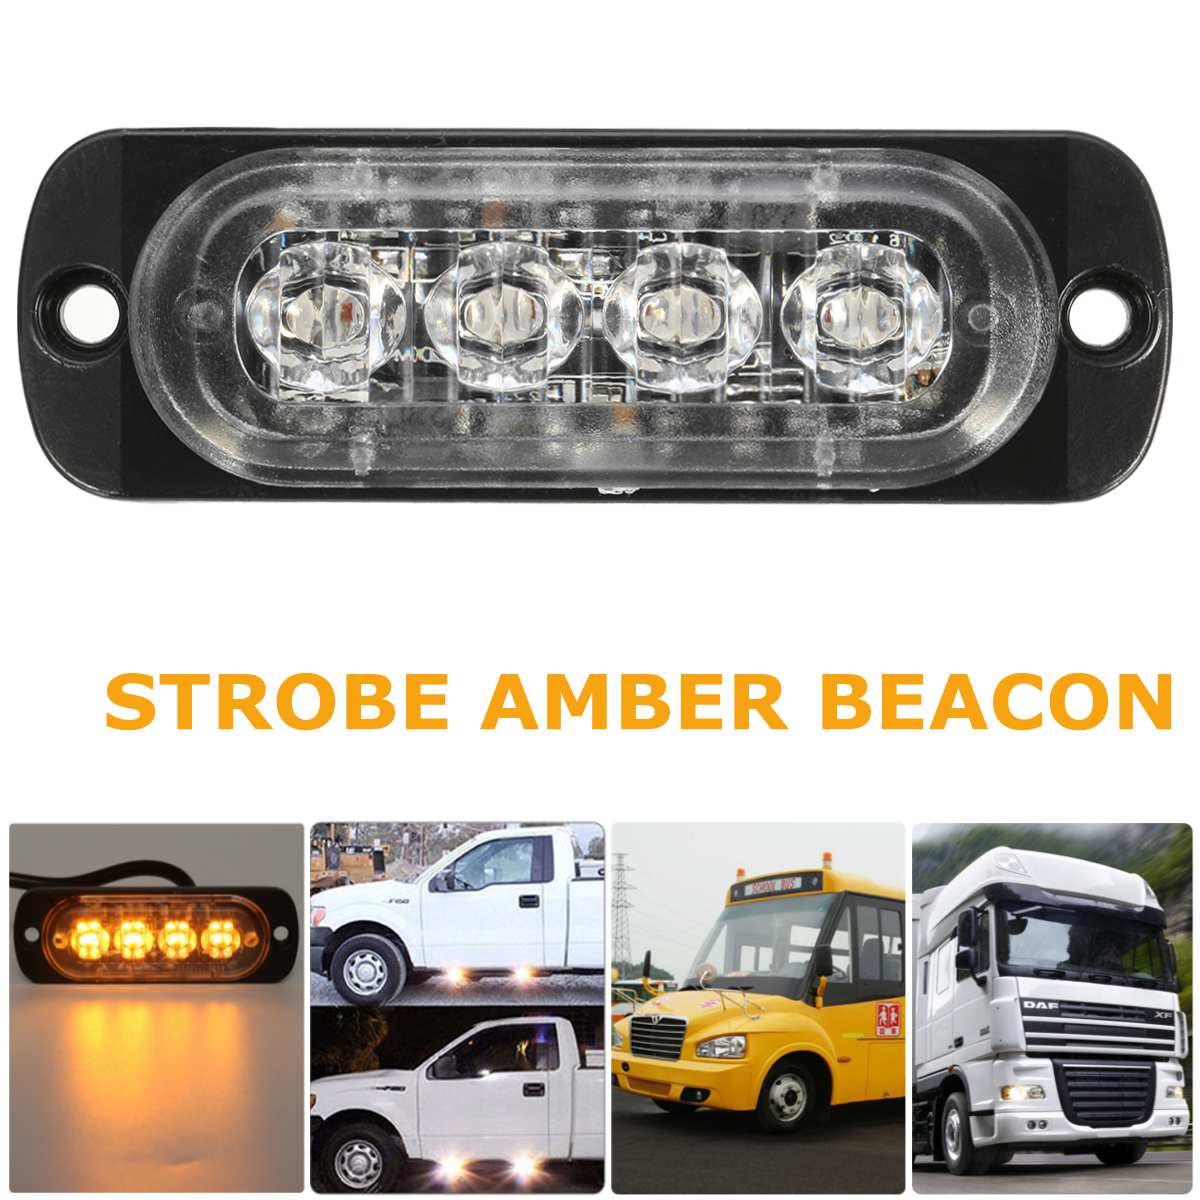 4 LED Car Flash Truck Emergency Beacon Warning Light Bar Hazard Strobe Amber 1pcs car emergency warning hazard light led flashing beacon strobe light for truck boat car